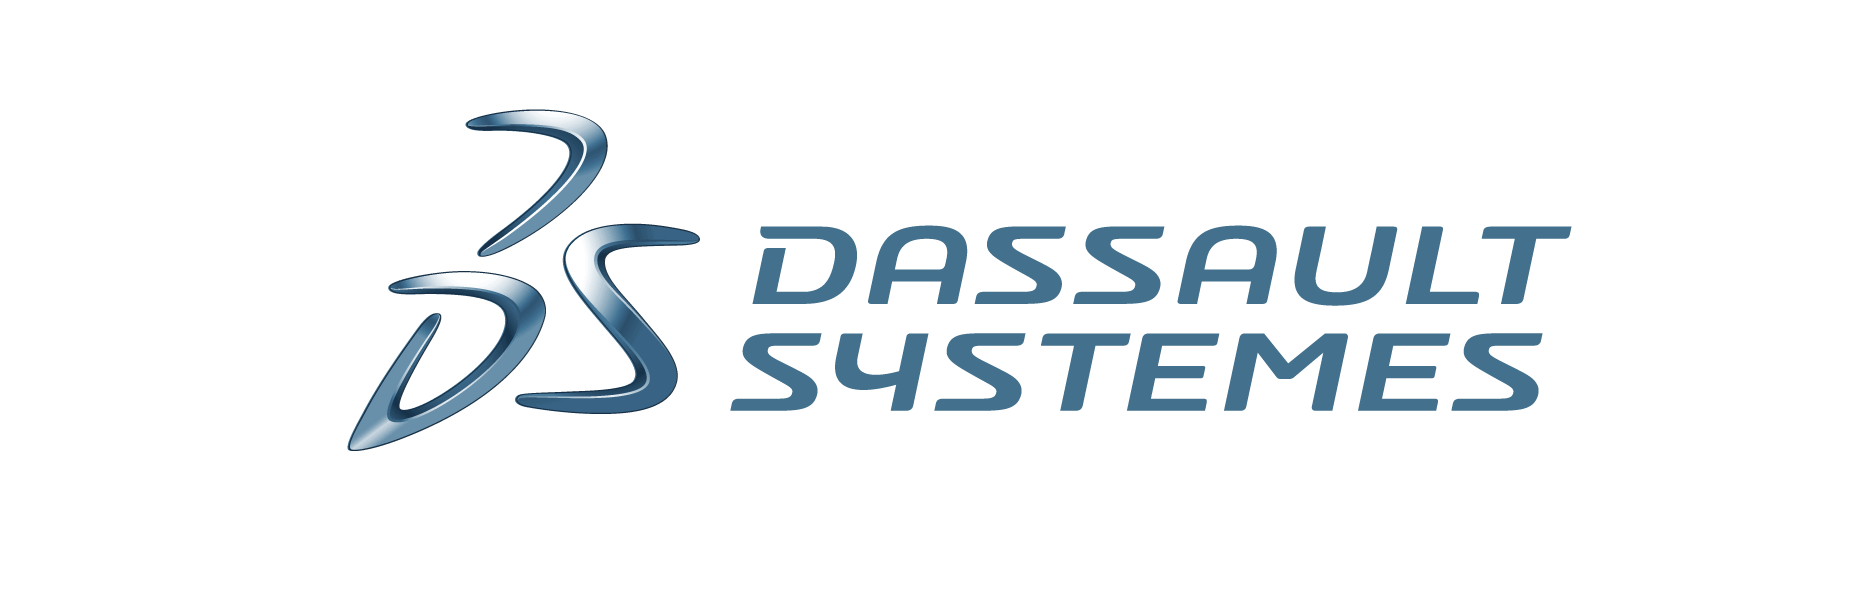 Dassault Systemes age of